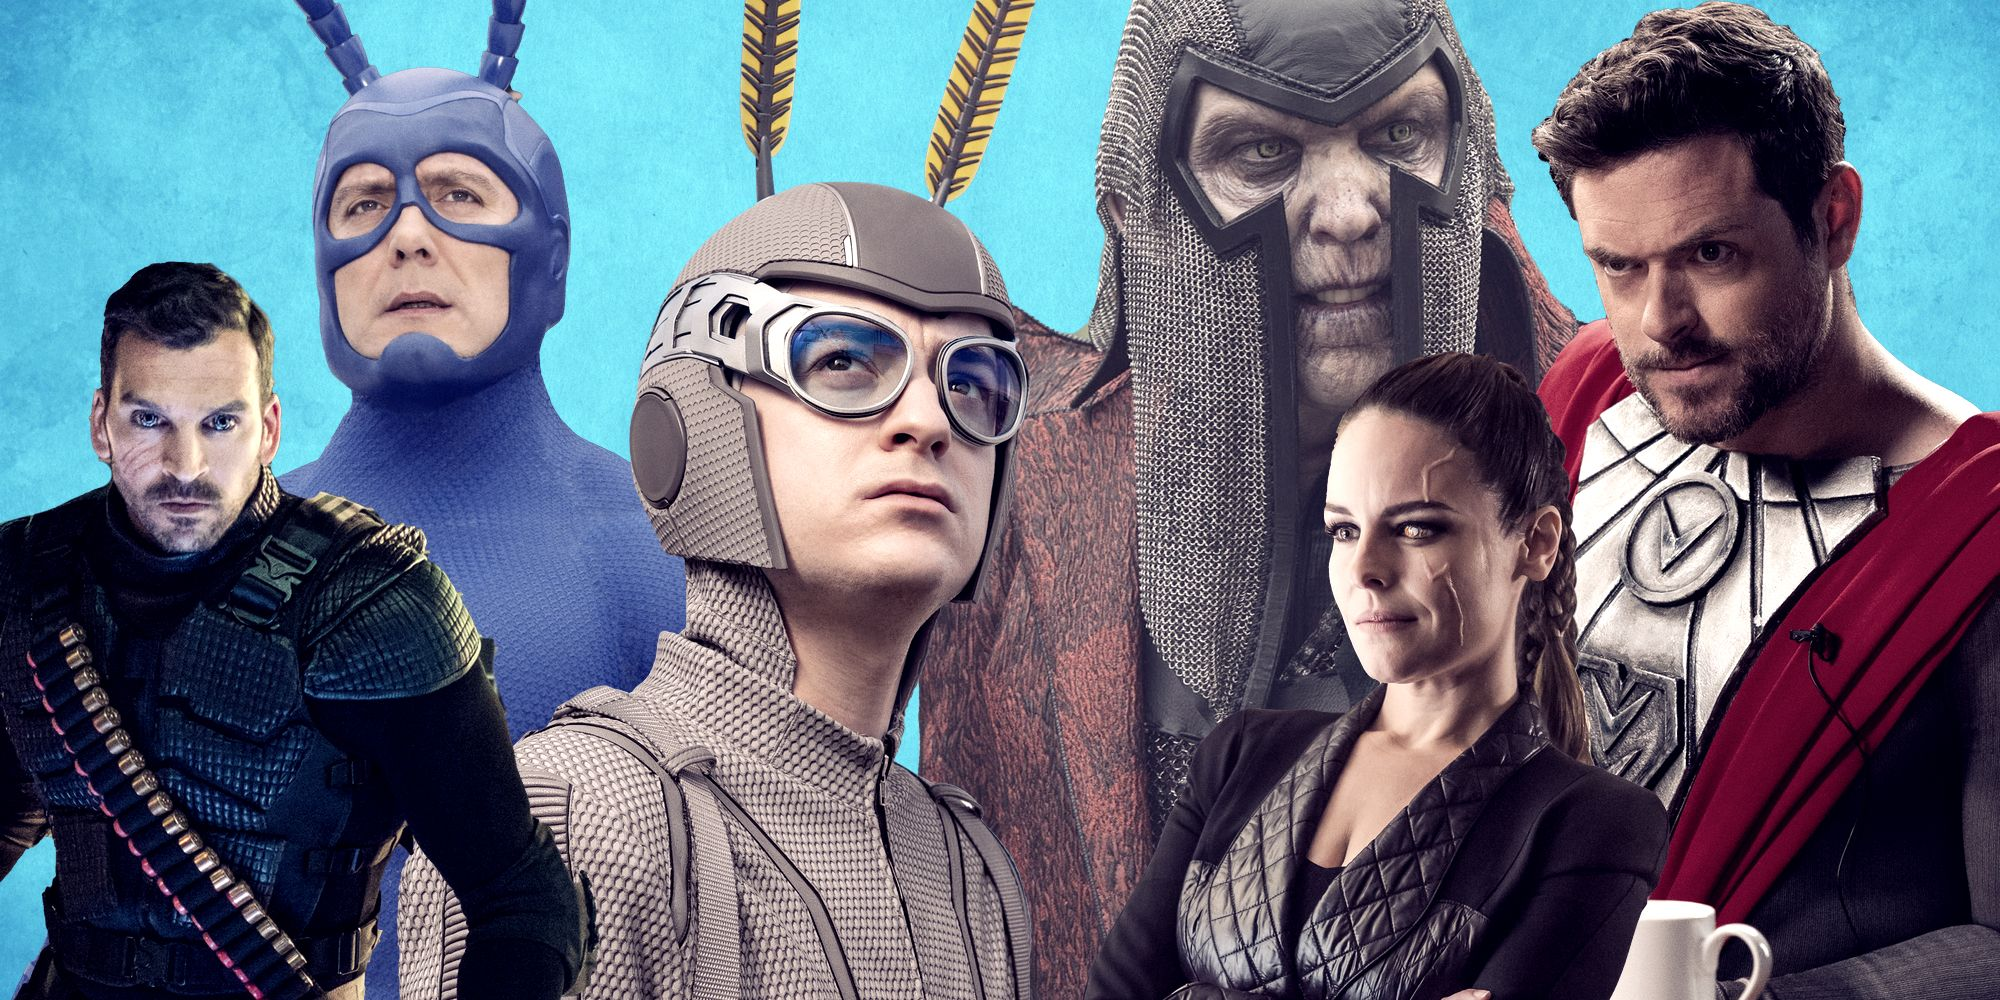 The Tick Creator On The Clever Mundanity Of The Show's Unique Characters